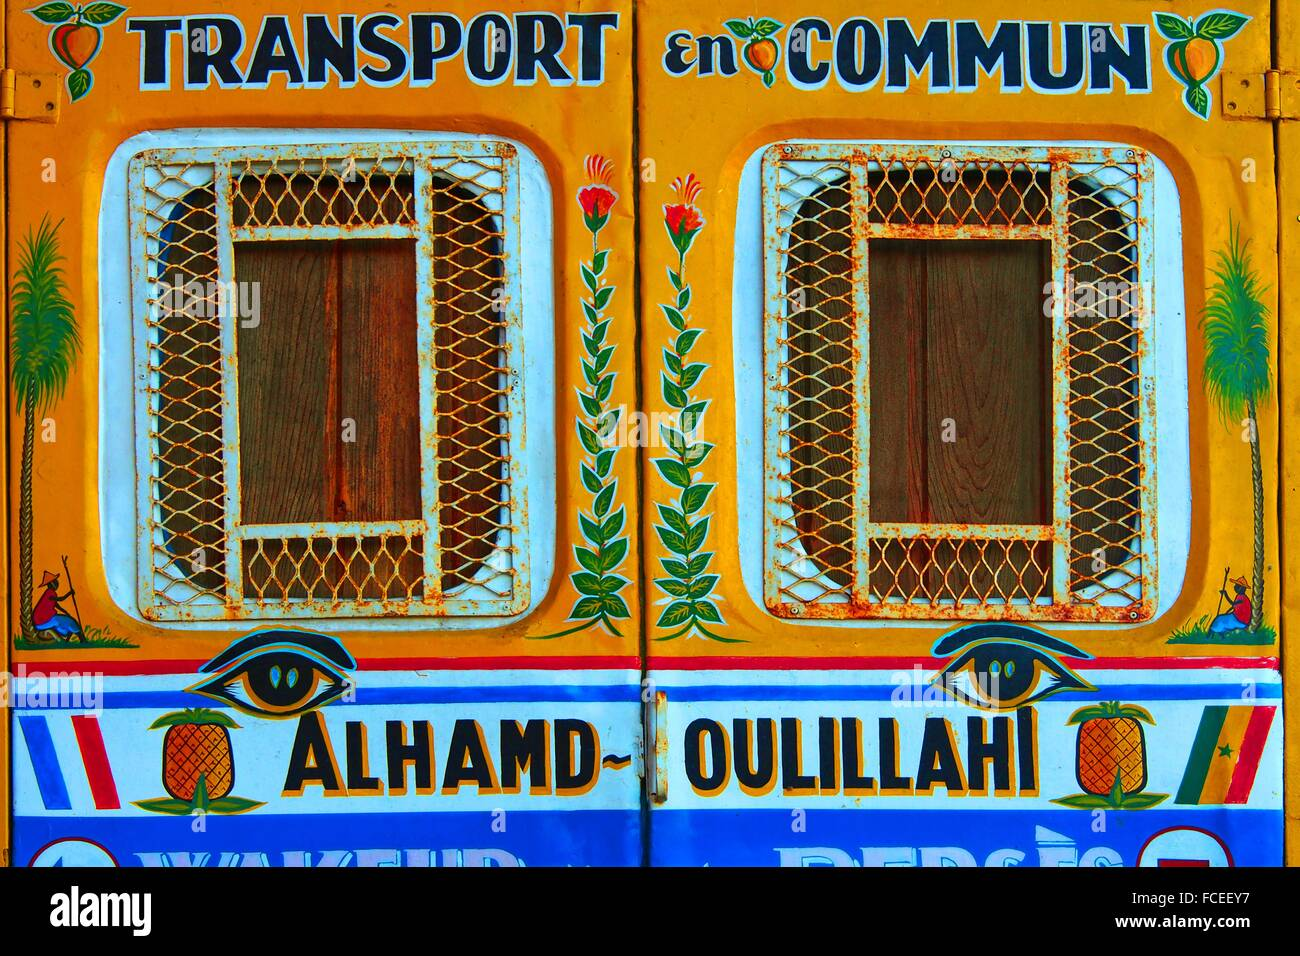 Back of a ´wakeur´ (kind of minibus) at Dakar, with a praise of God in Arabic (Alhamd-oulillah), Senegal - Stock Image